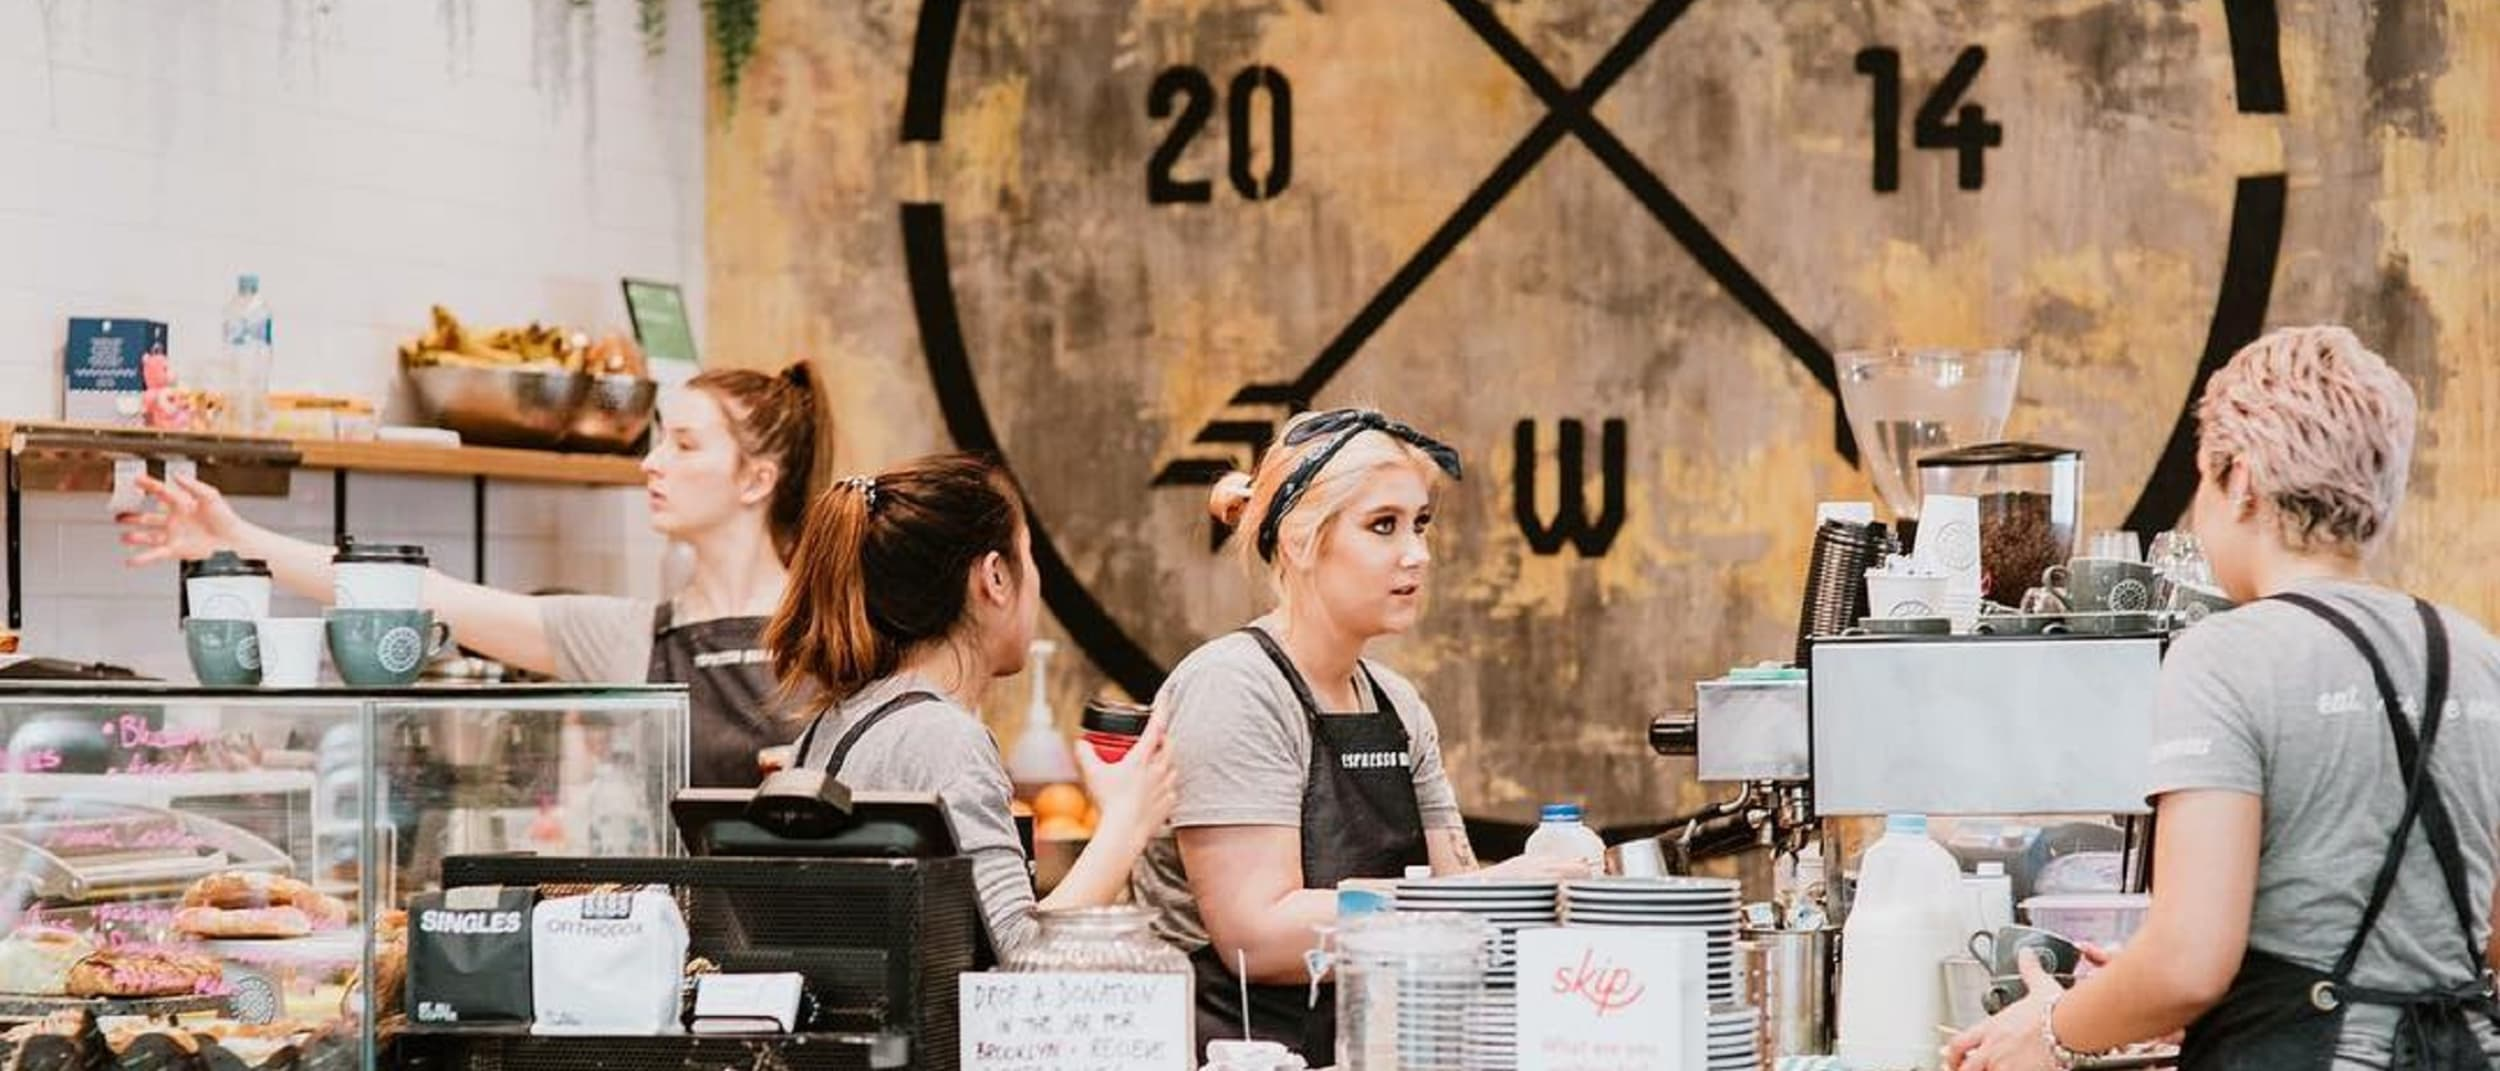 Keeping up with Espresso Warriors